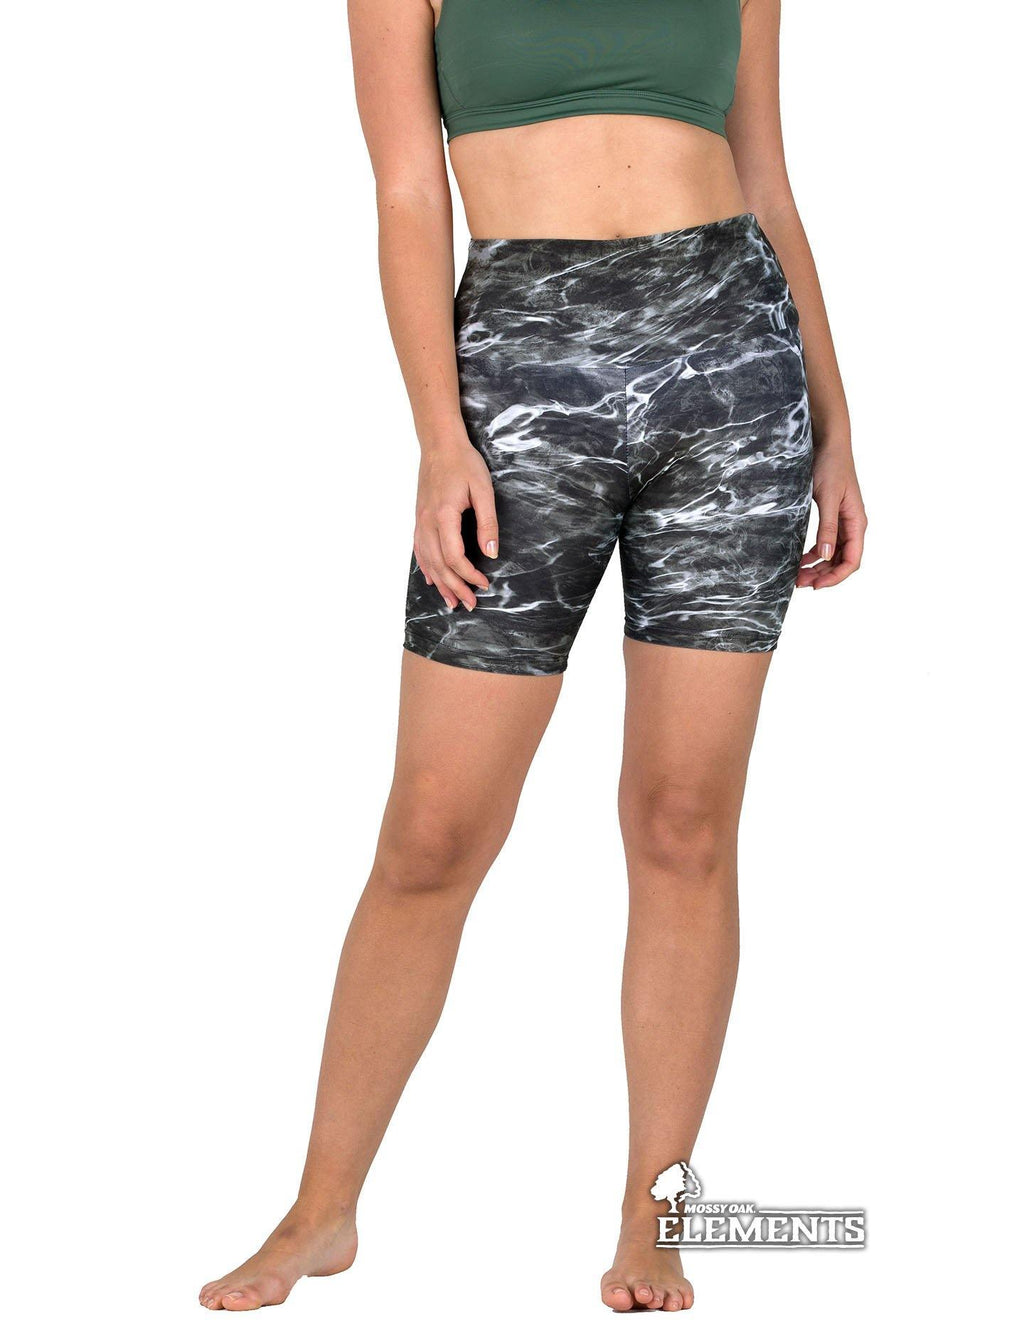 Apsara Shorts High Waist, Mossy Oak Elements Blacktip